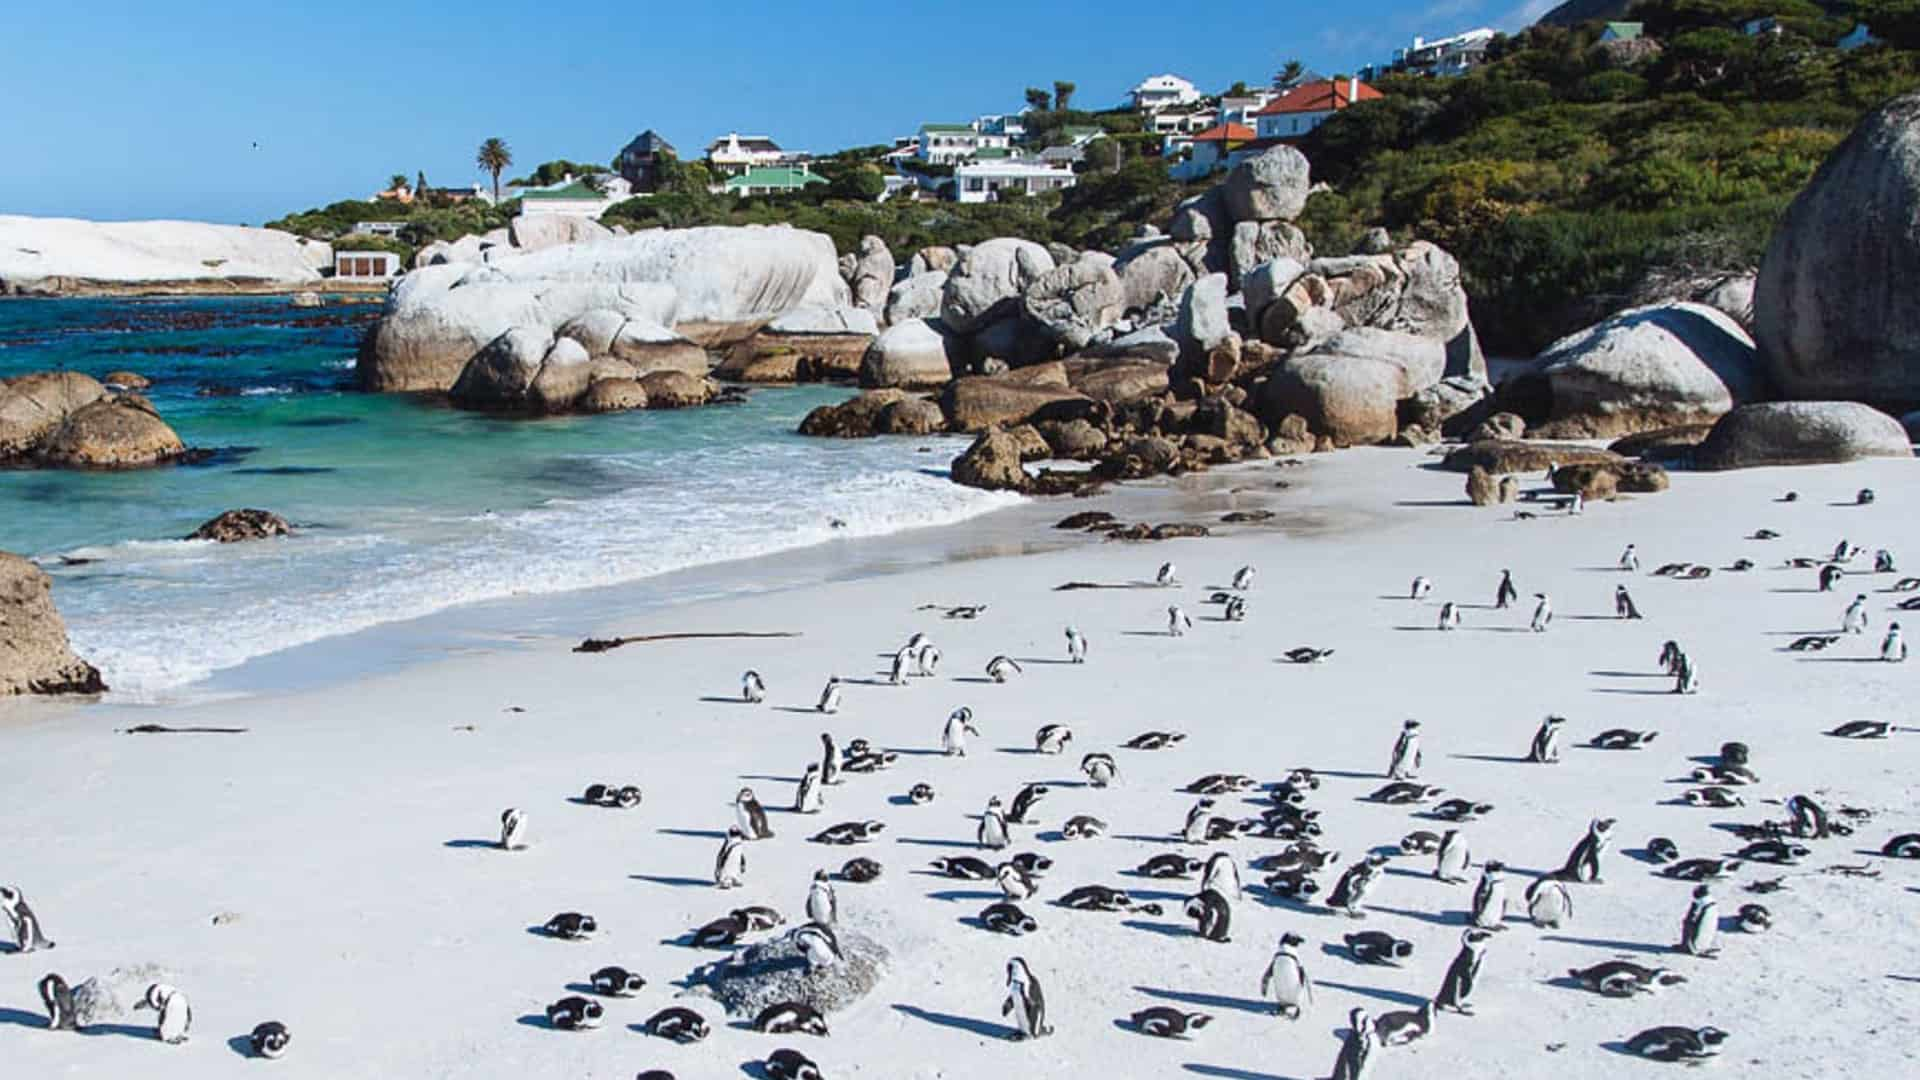 Swim with Penguins at Boulders Beach, Cape Town